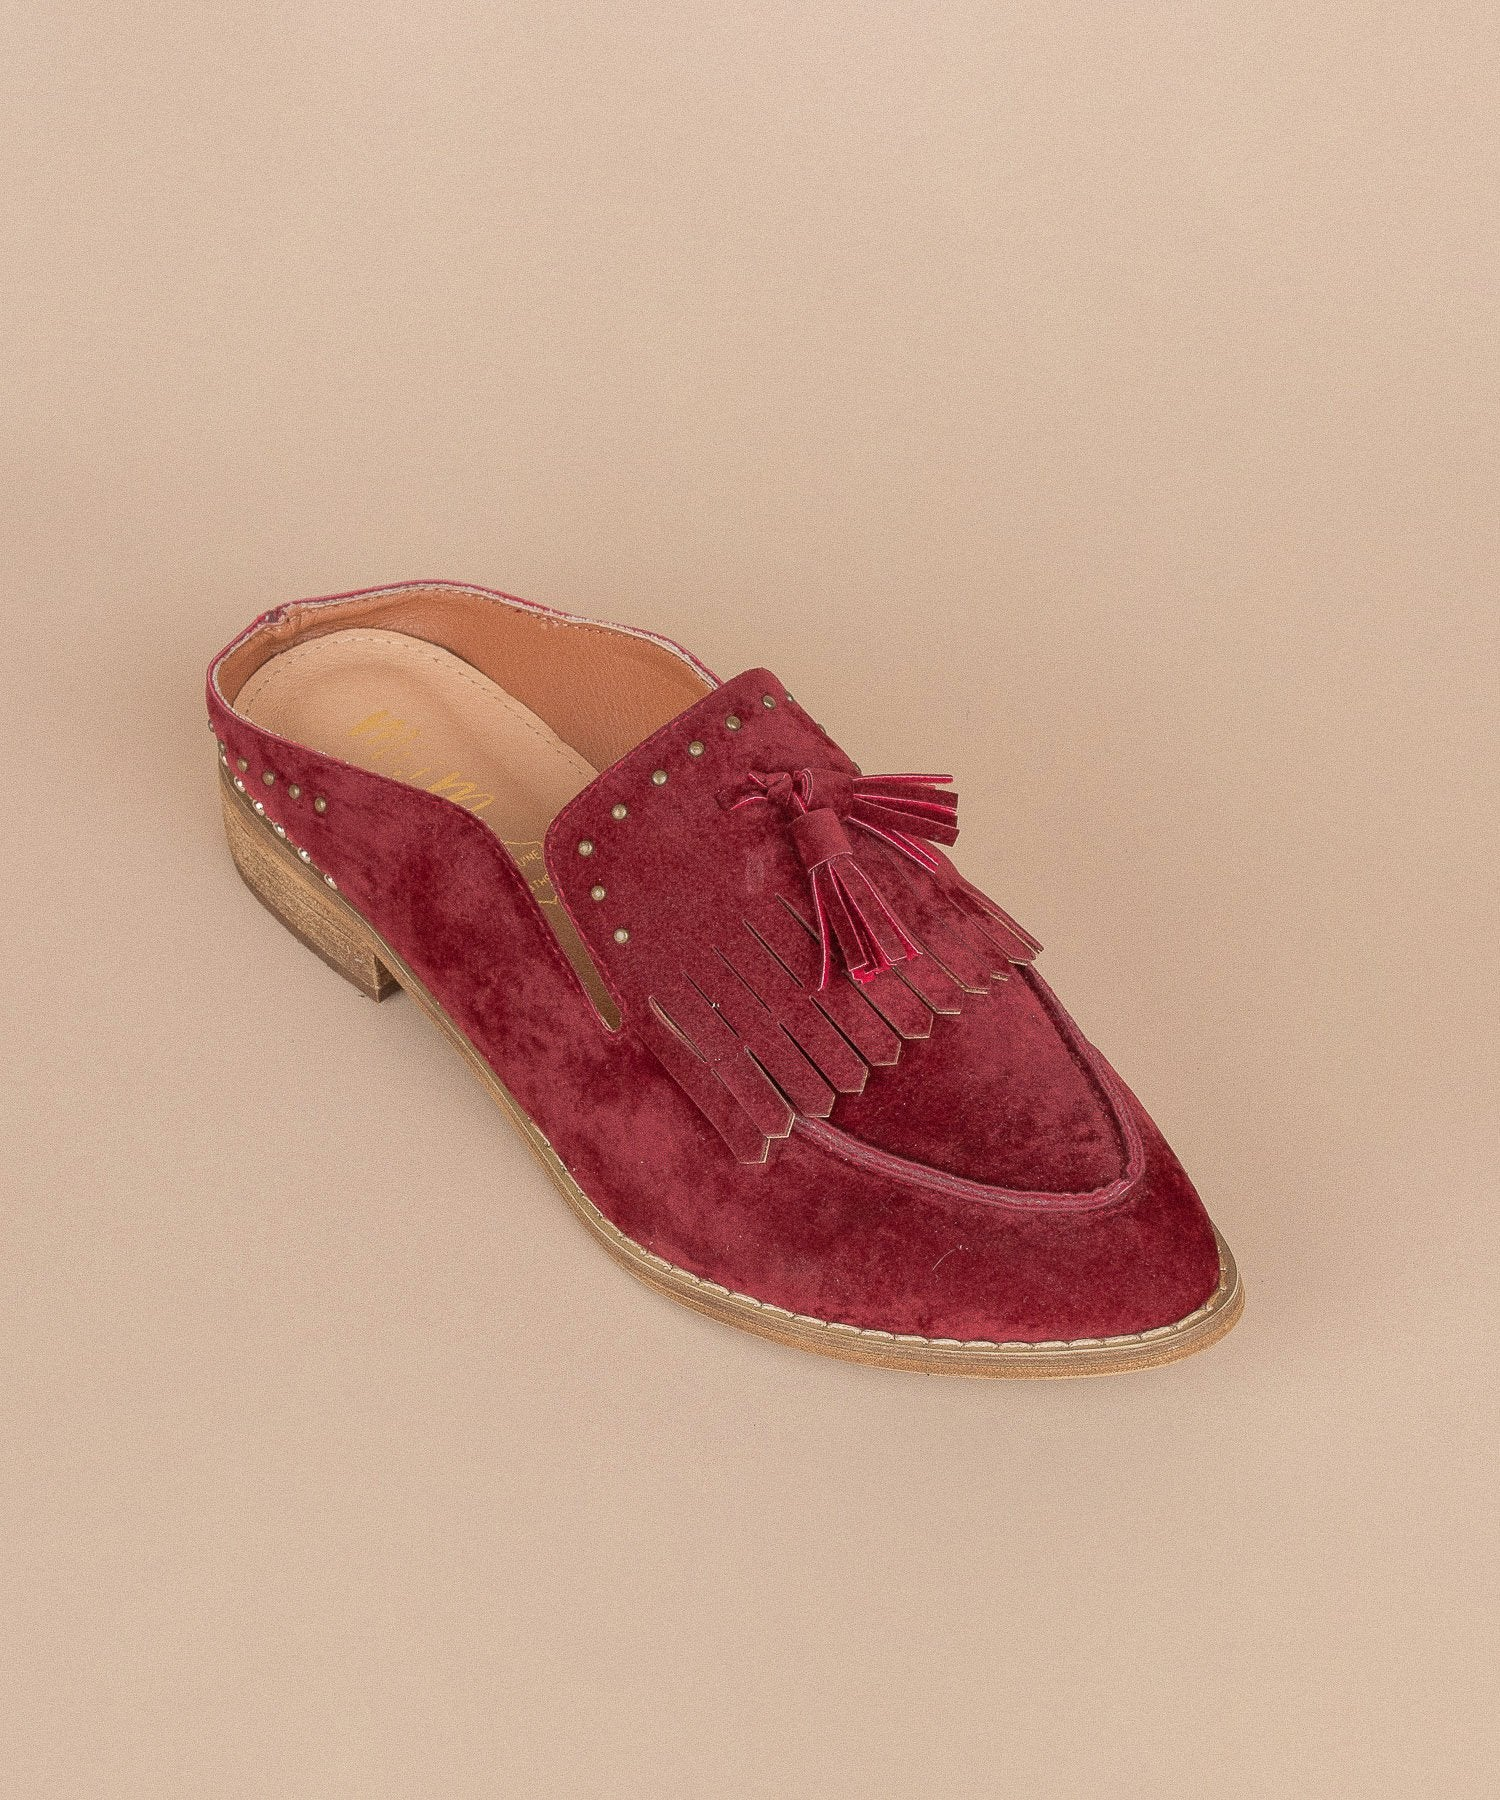 The Berlin | Tasseled Faux Suede Loafer Mules